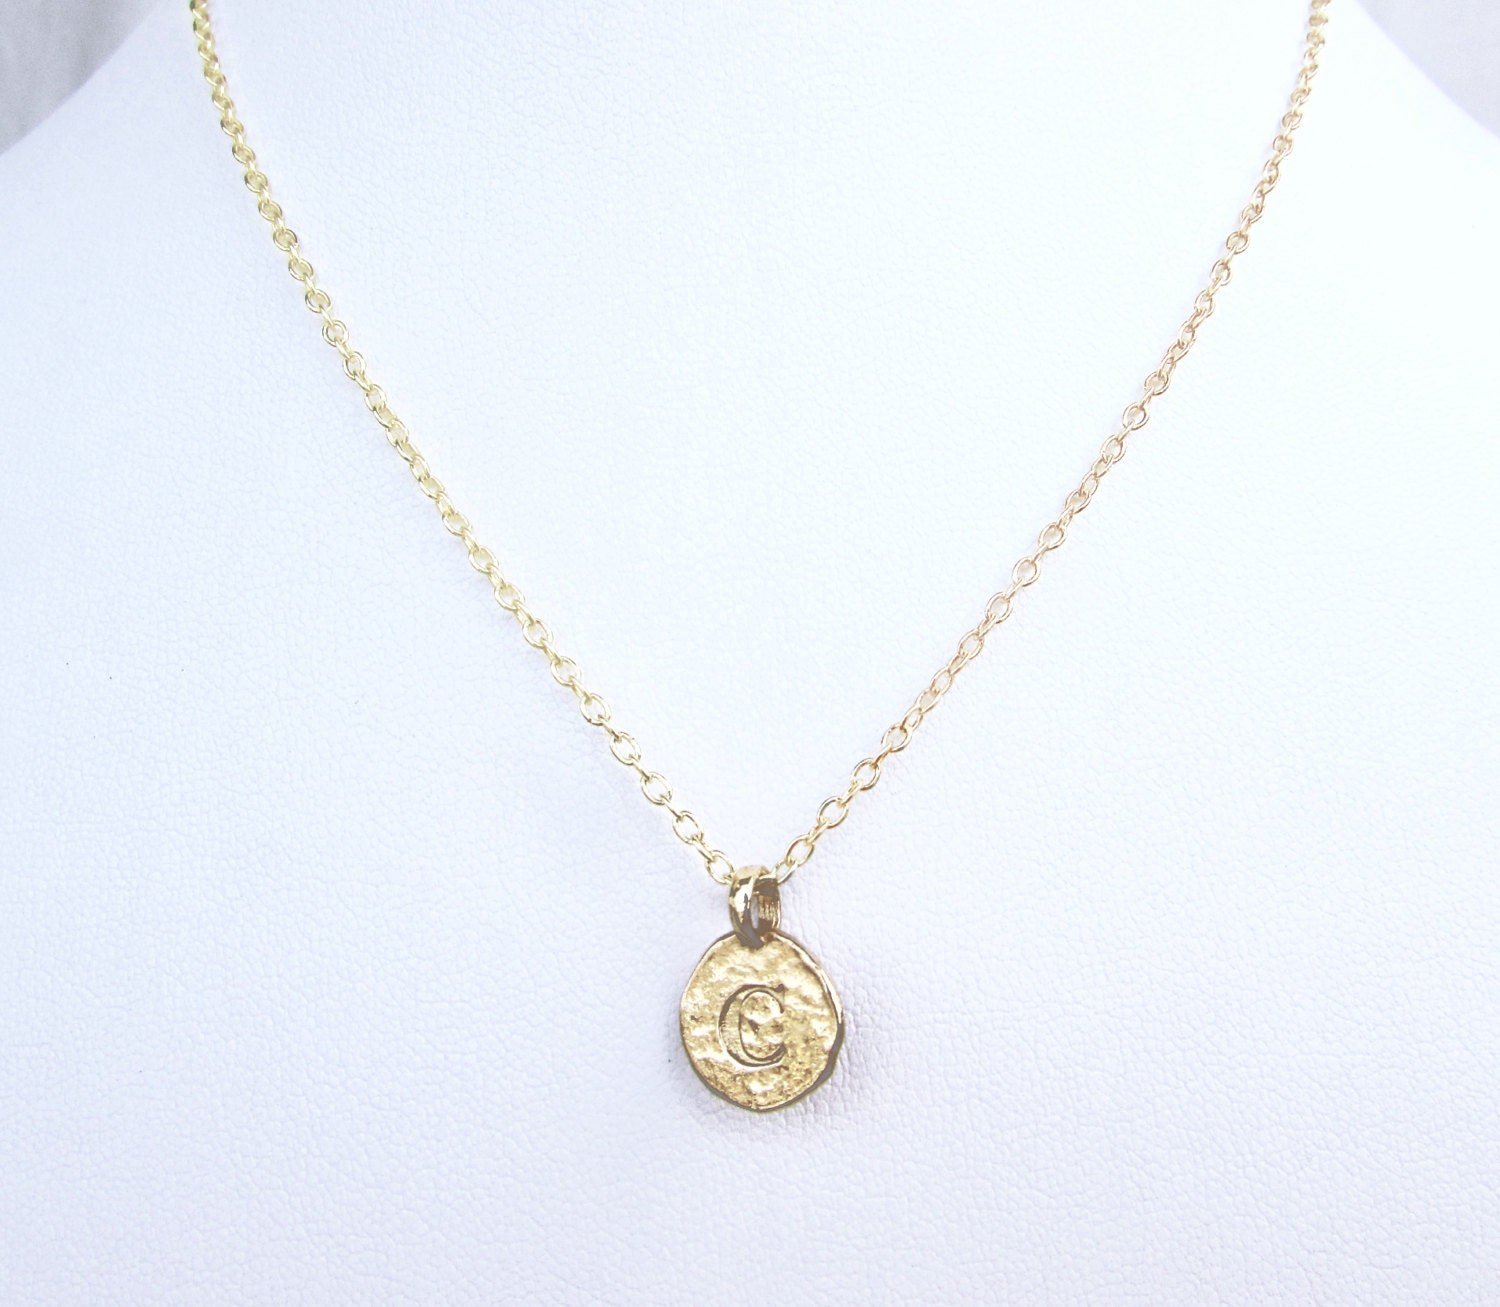 C personalized initial necklace gold c stamped for Custom letter necklace gold